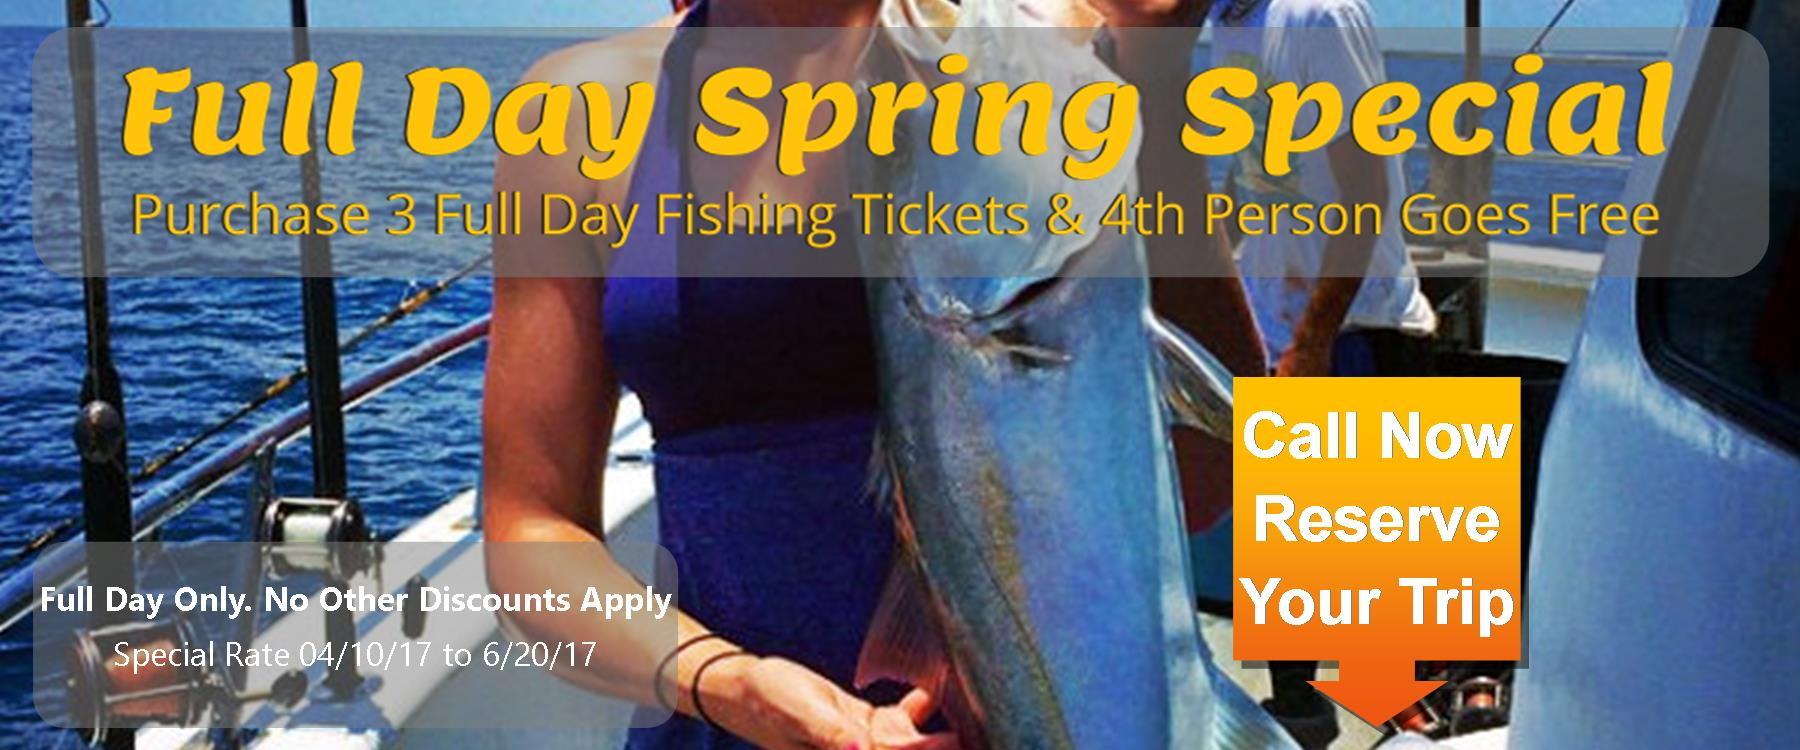 deep sea fishing coupon deal